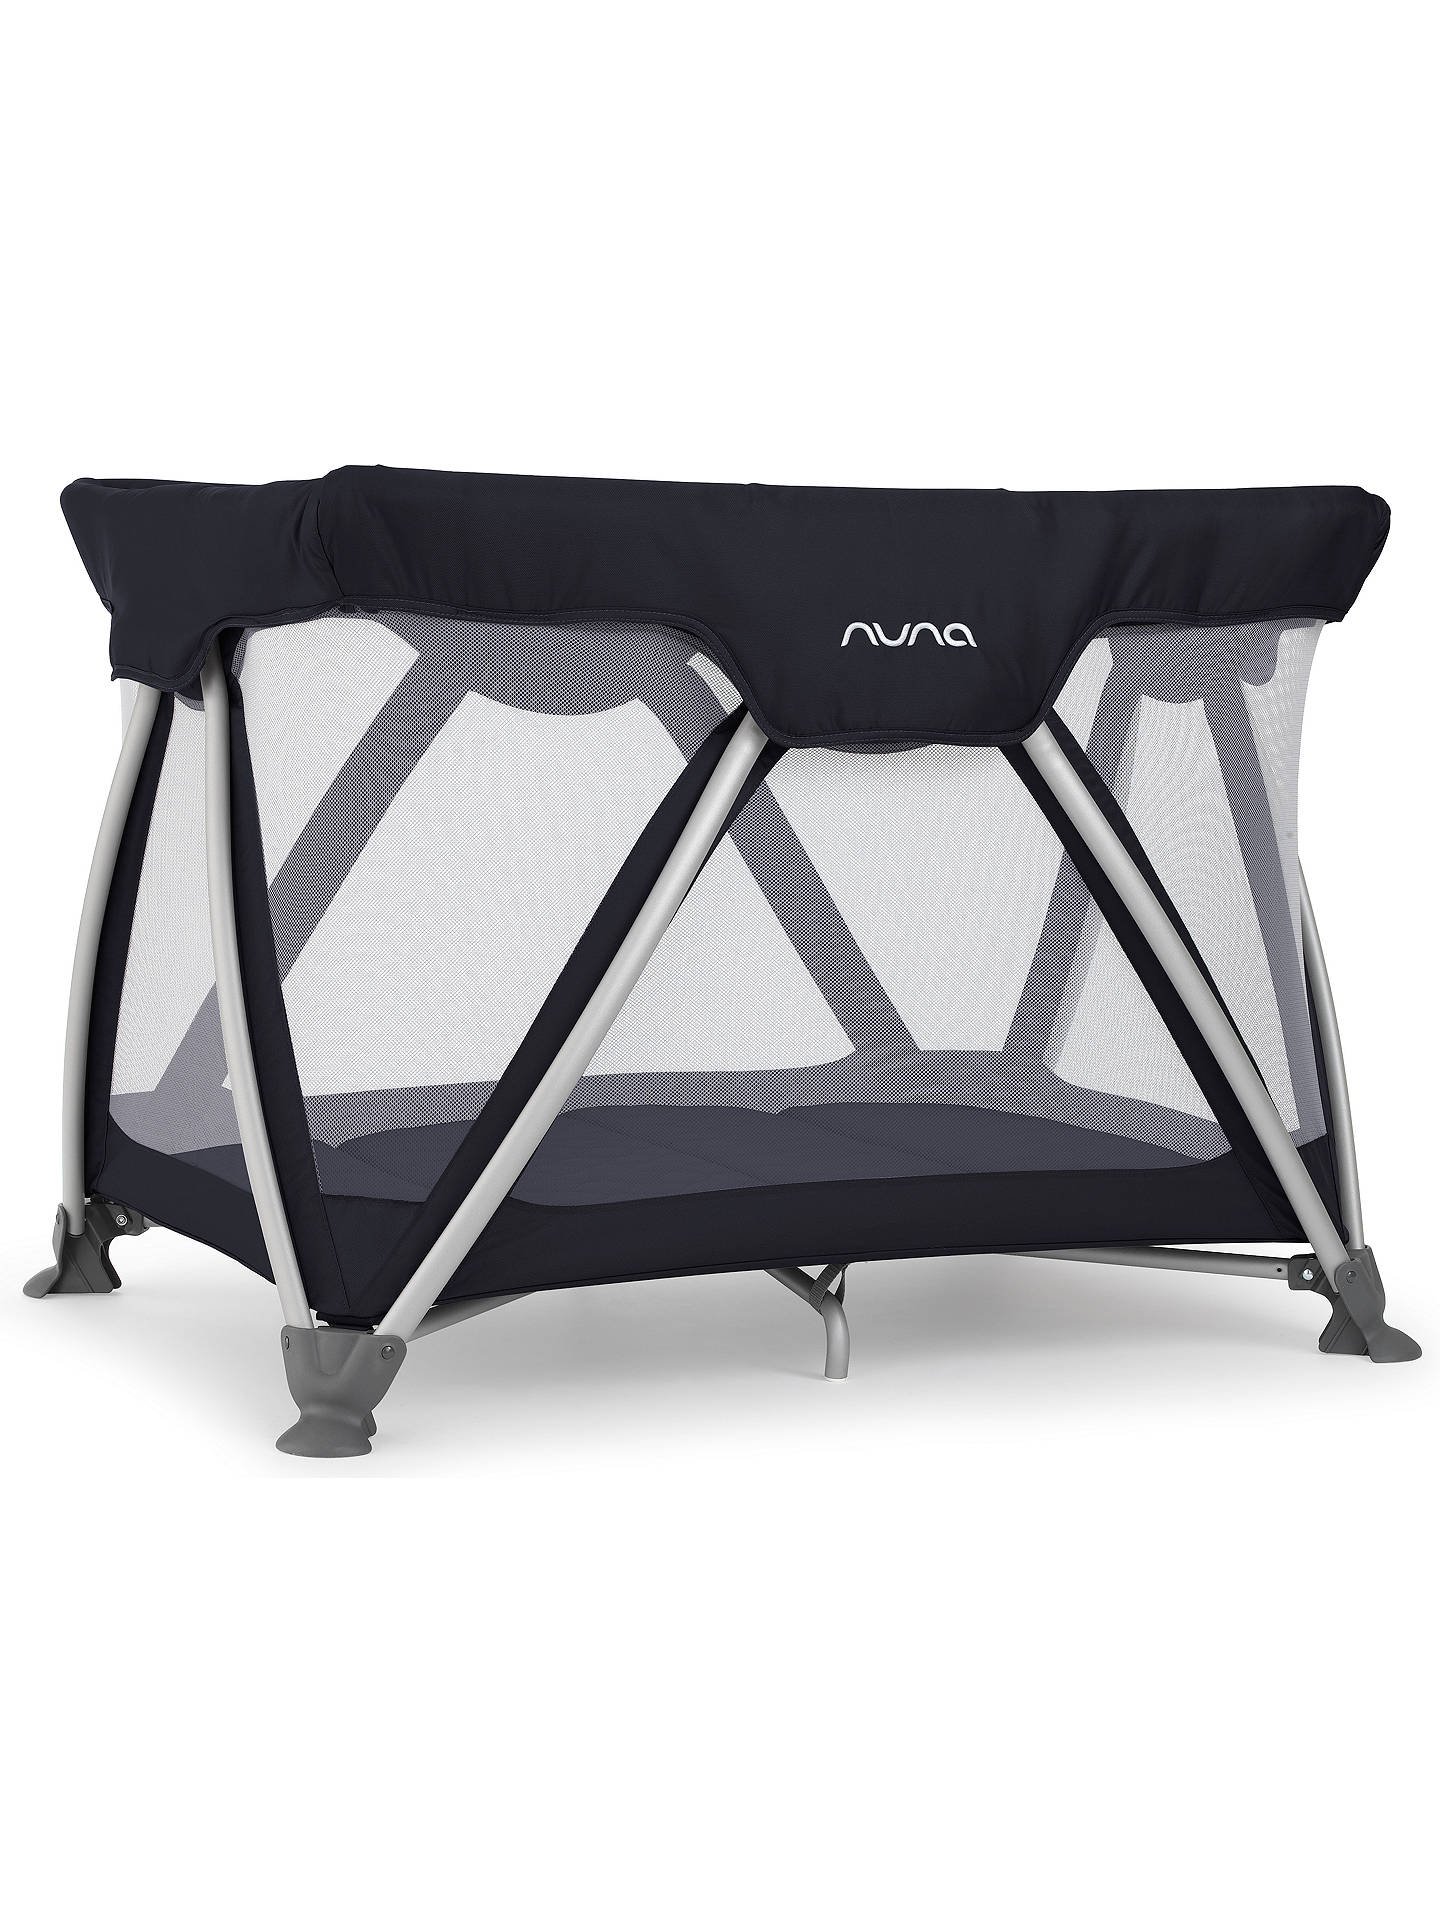 Nuna Sena Travel Cot Indigo At John Lewis Amp Partners